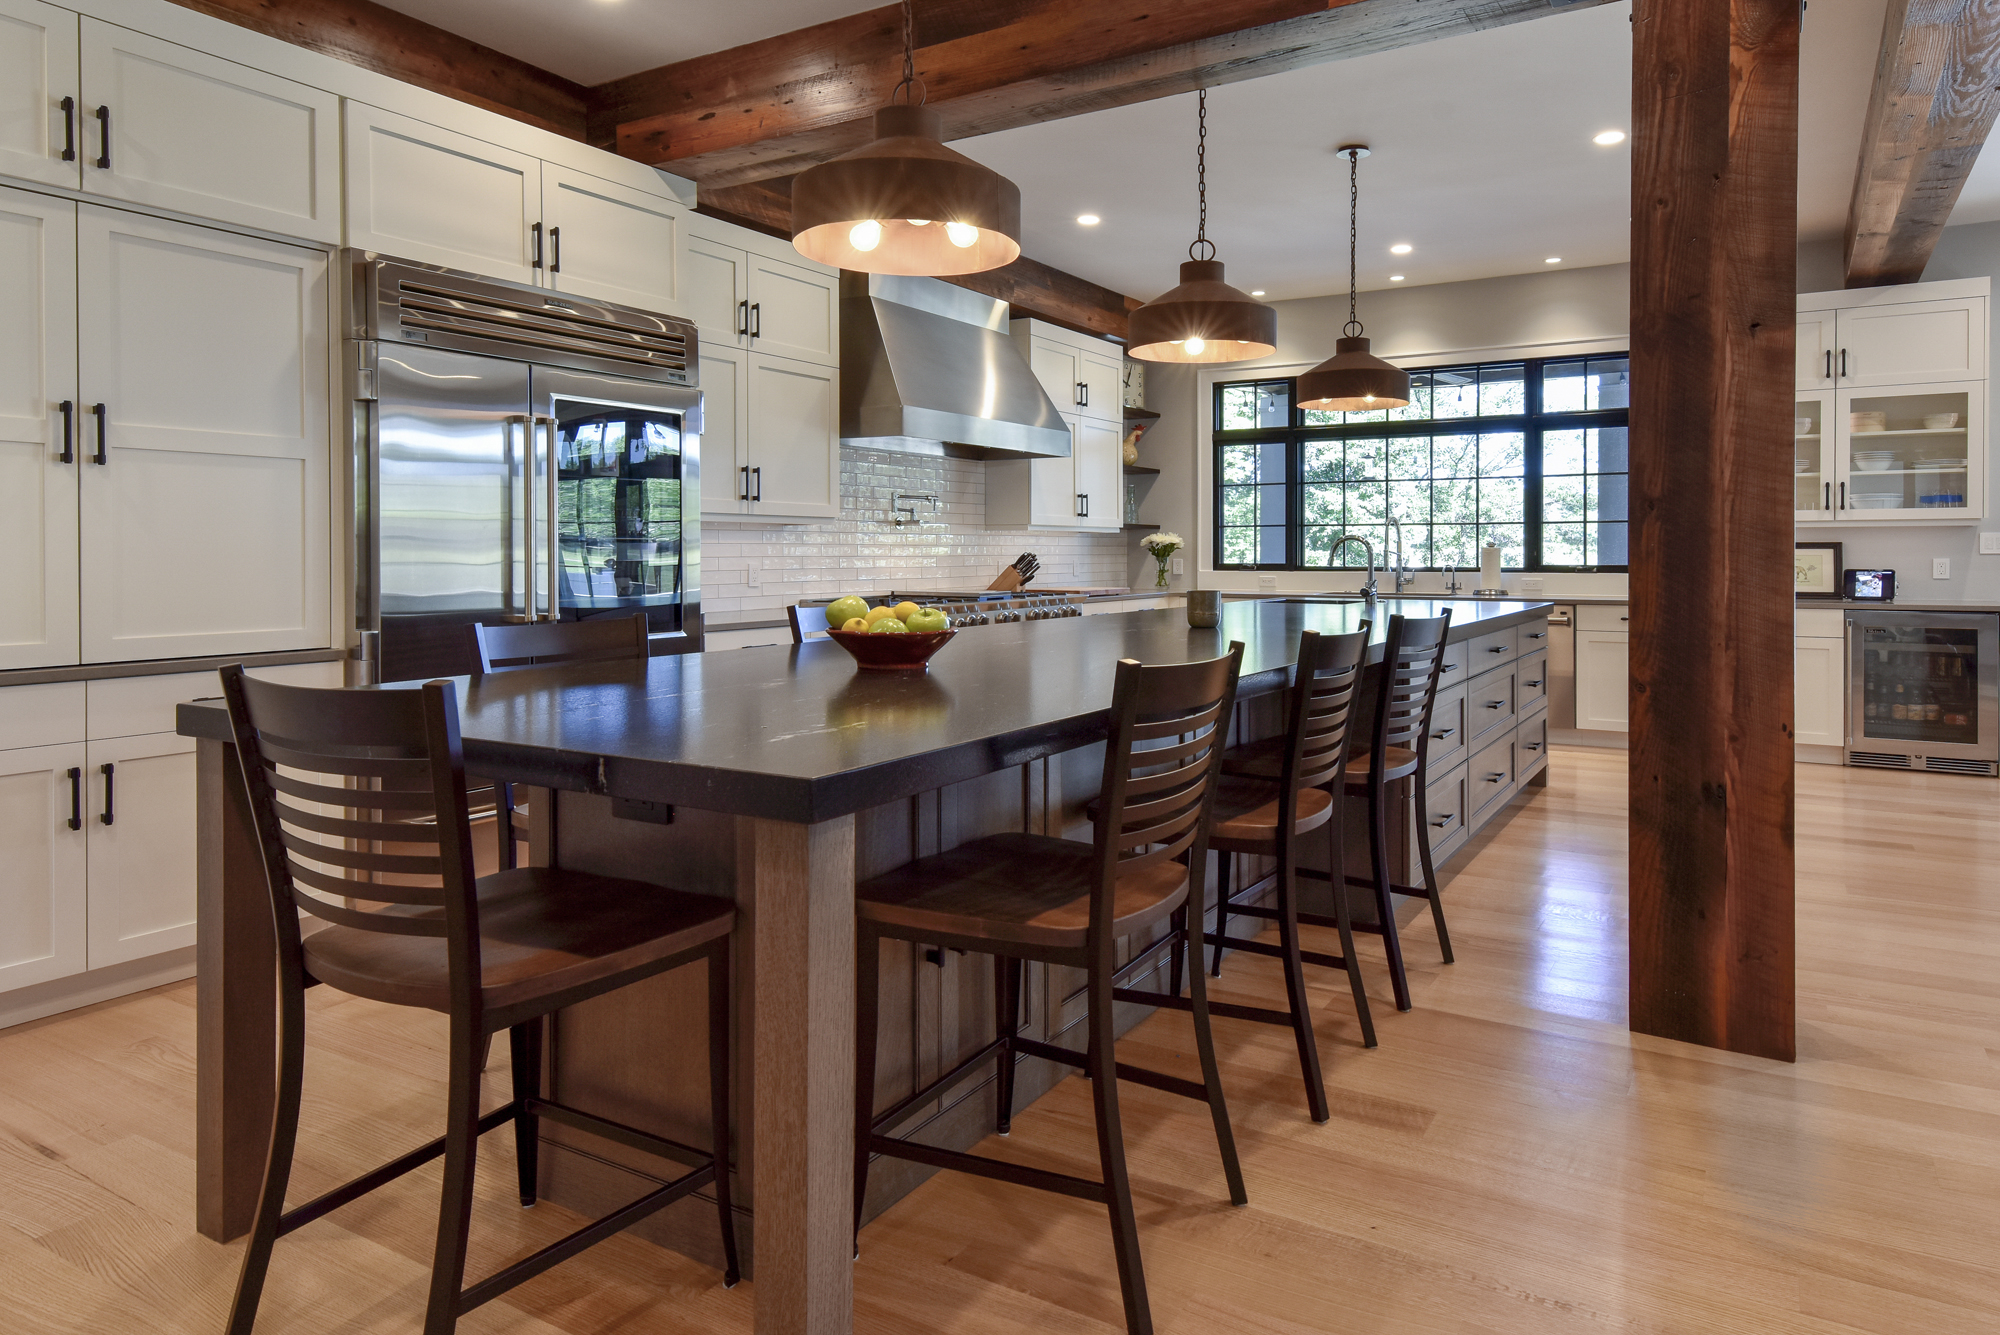 Kitchens, Breakfast & Dining Rooms Photo Gallery | BOWA ...